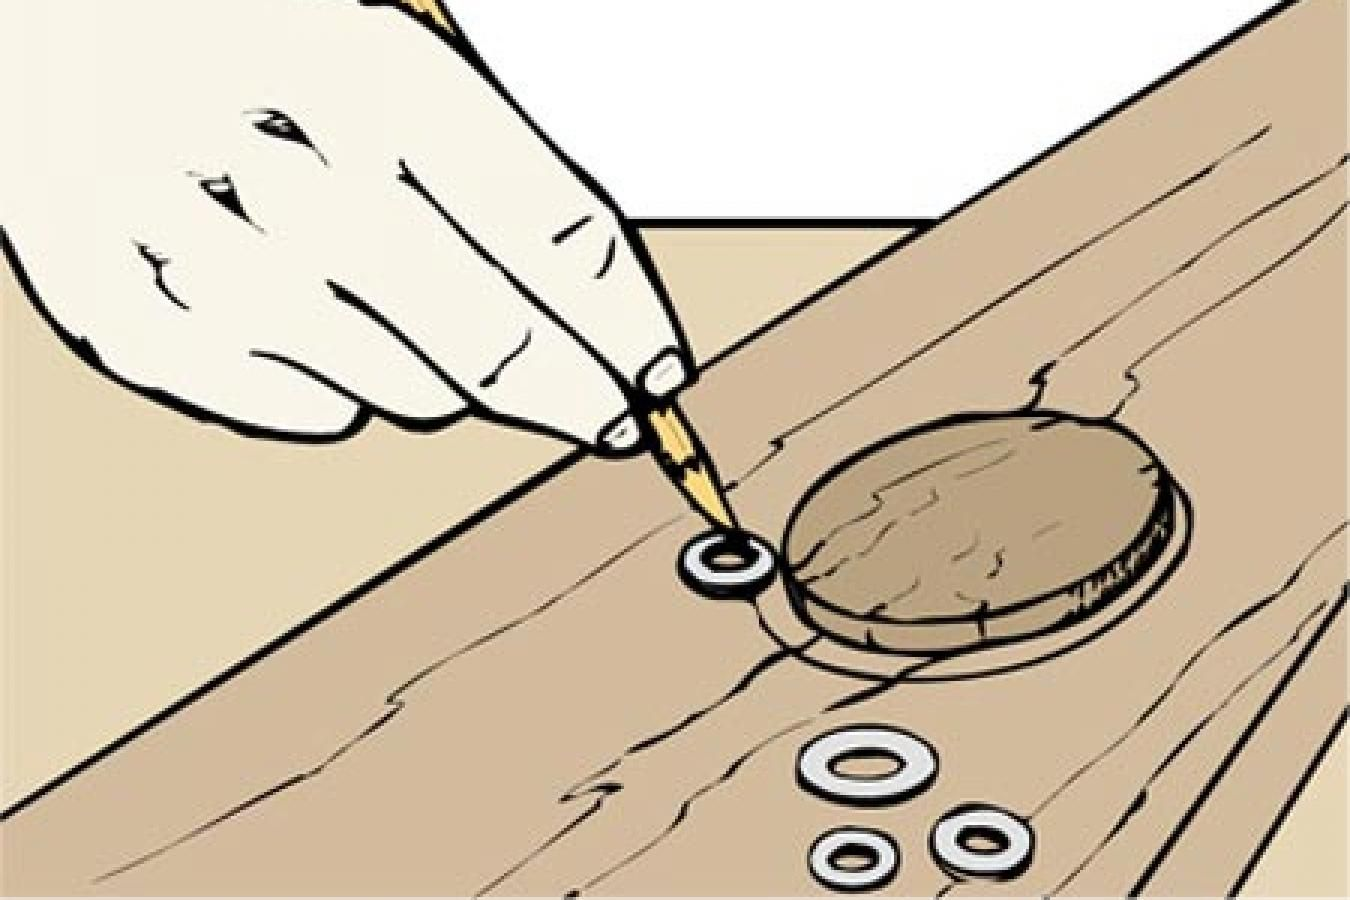 For different router guide bushings, Use a flat metal